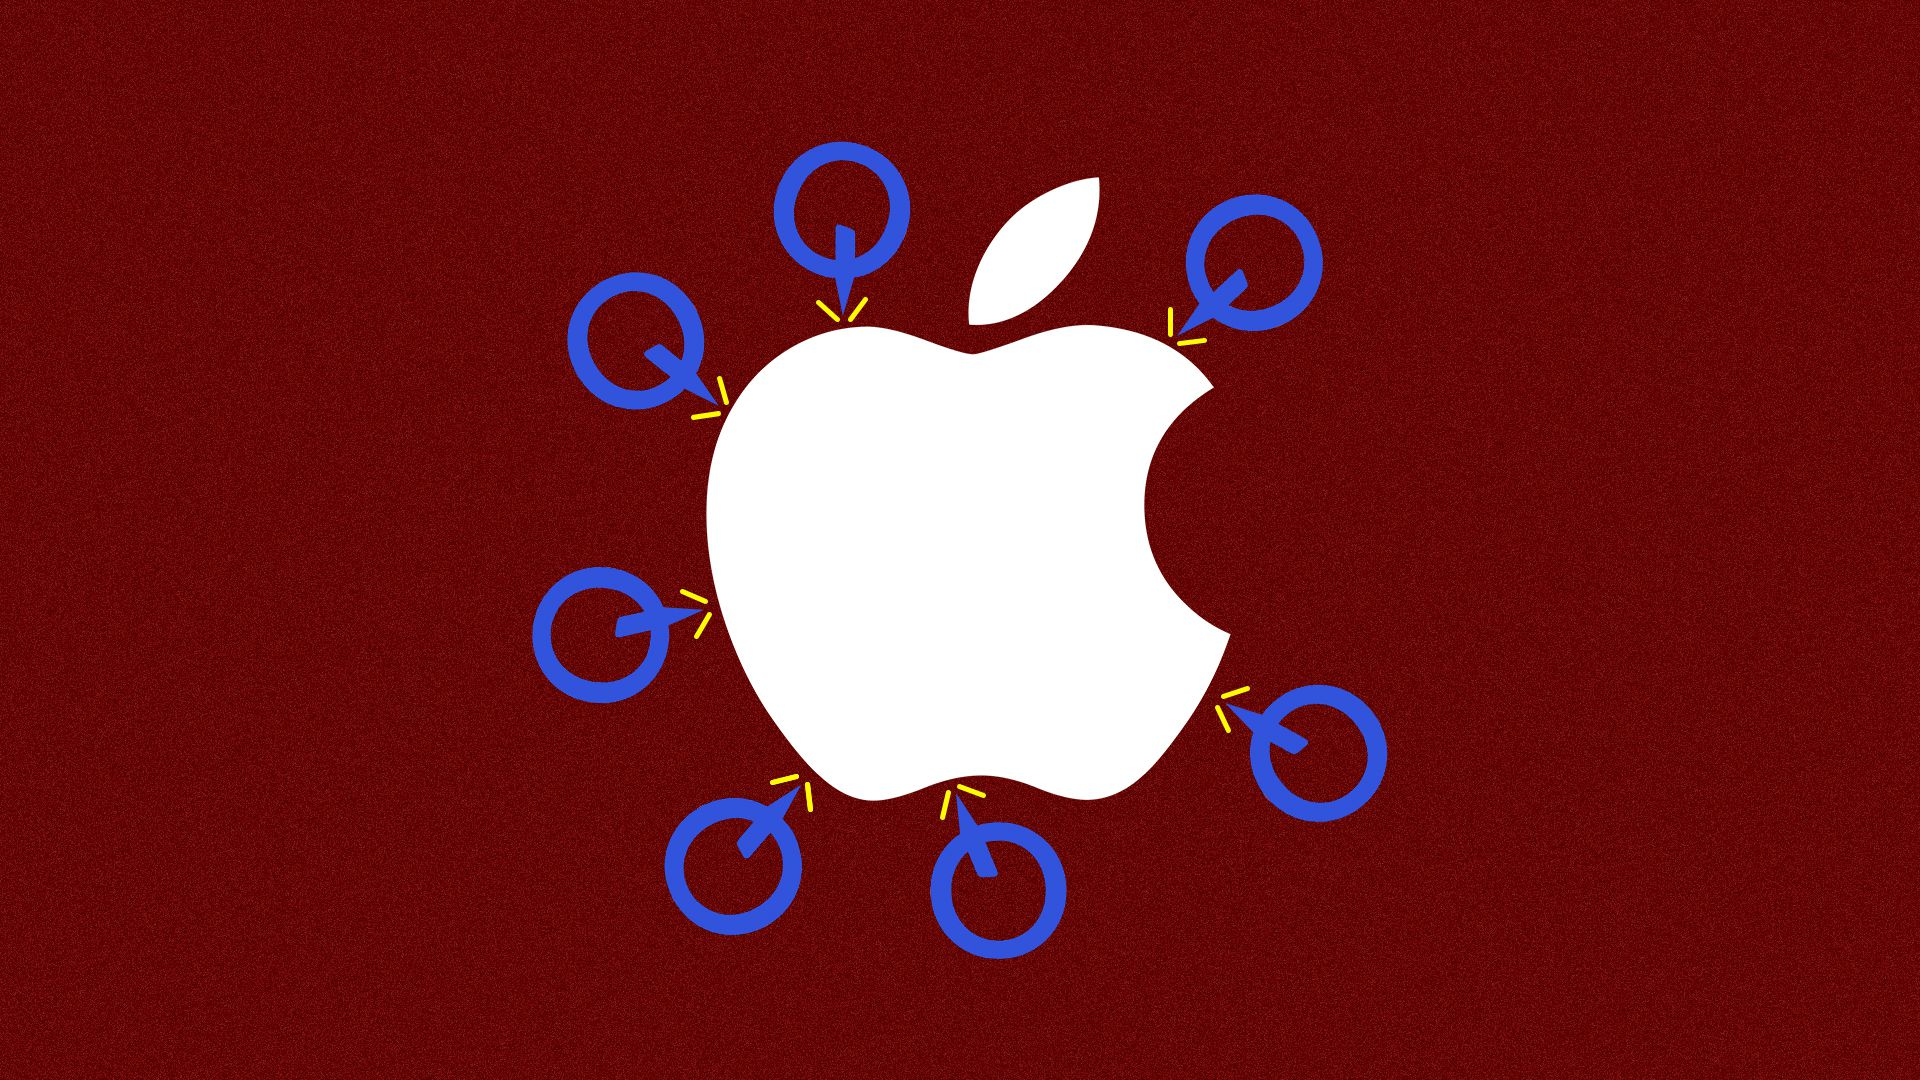 Illustration of Qualcomm logos attacking Apple logos